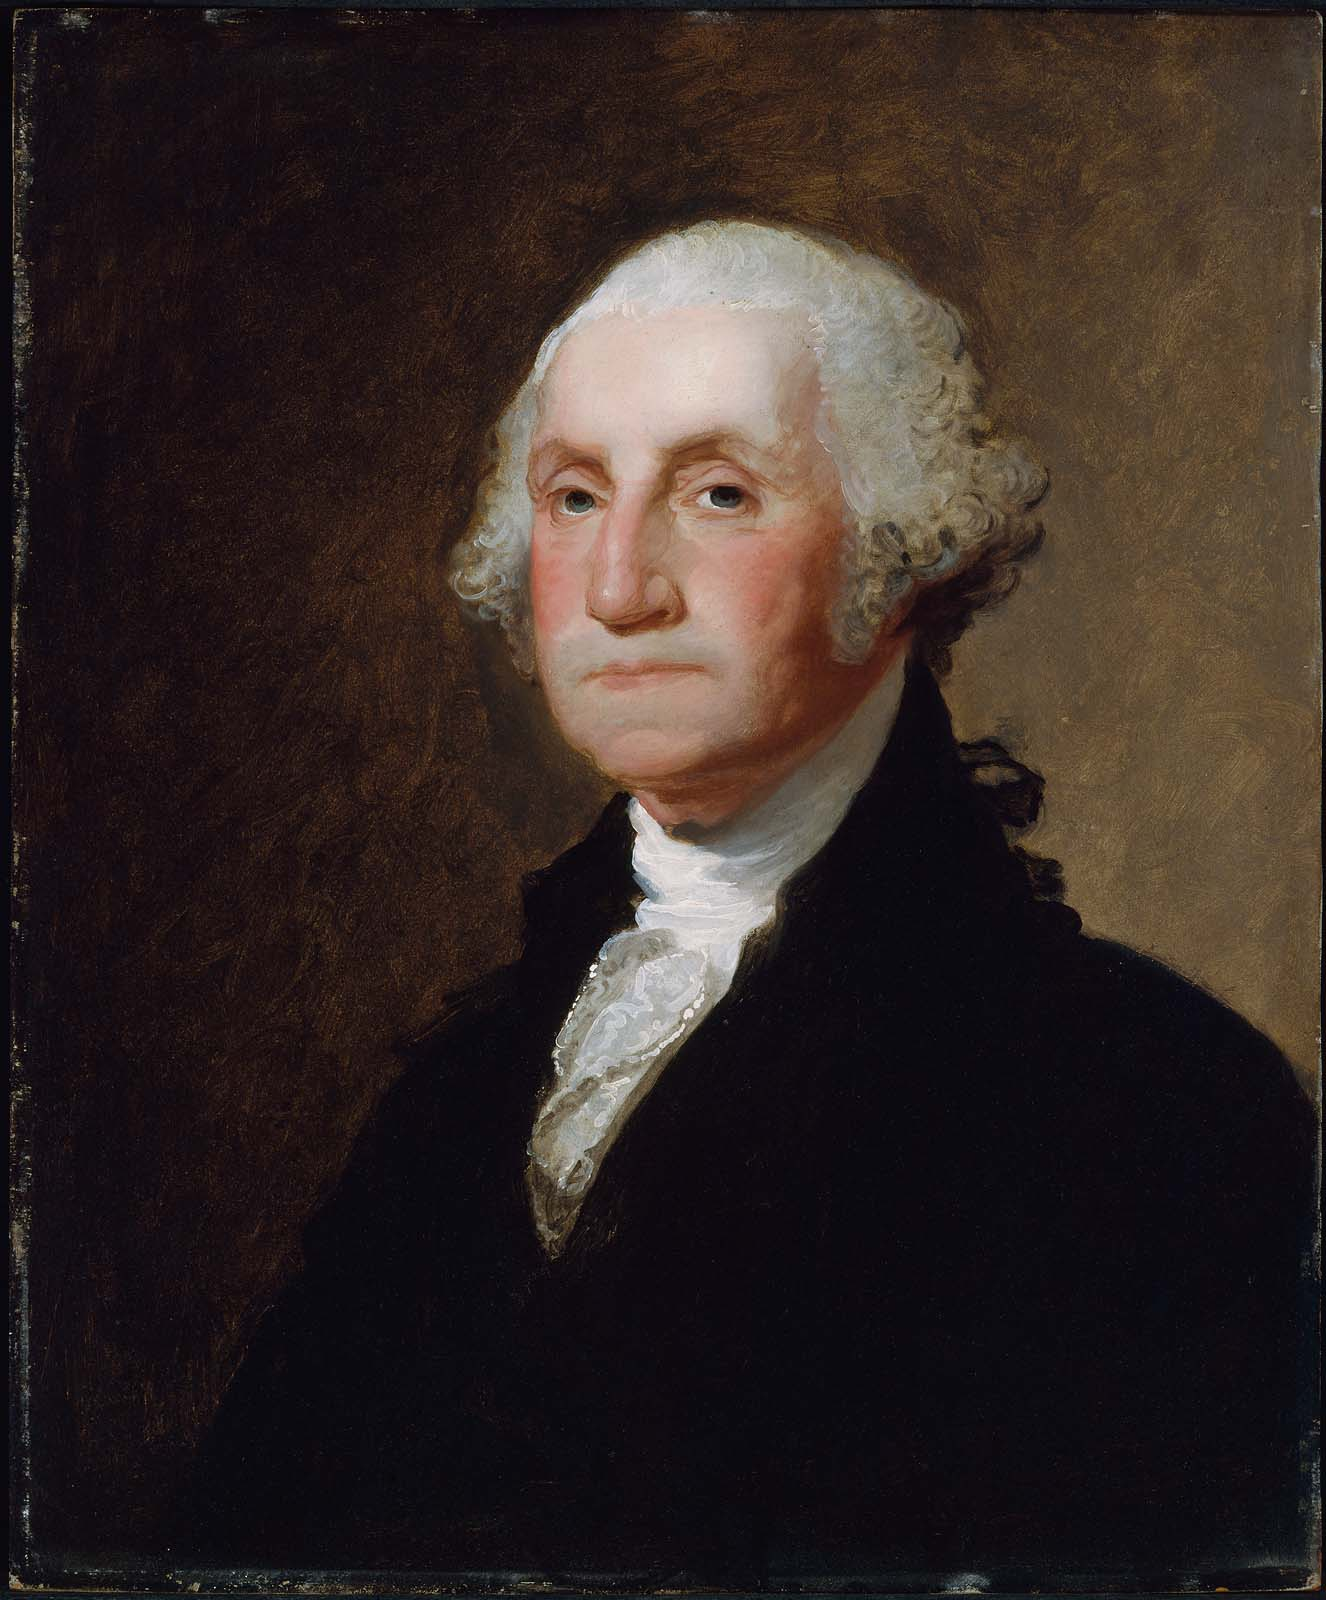 Quotes About George Washington By John Adams: Museum Of Fine Arts, Boston